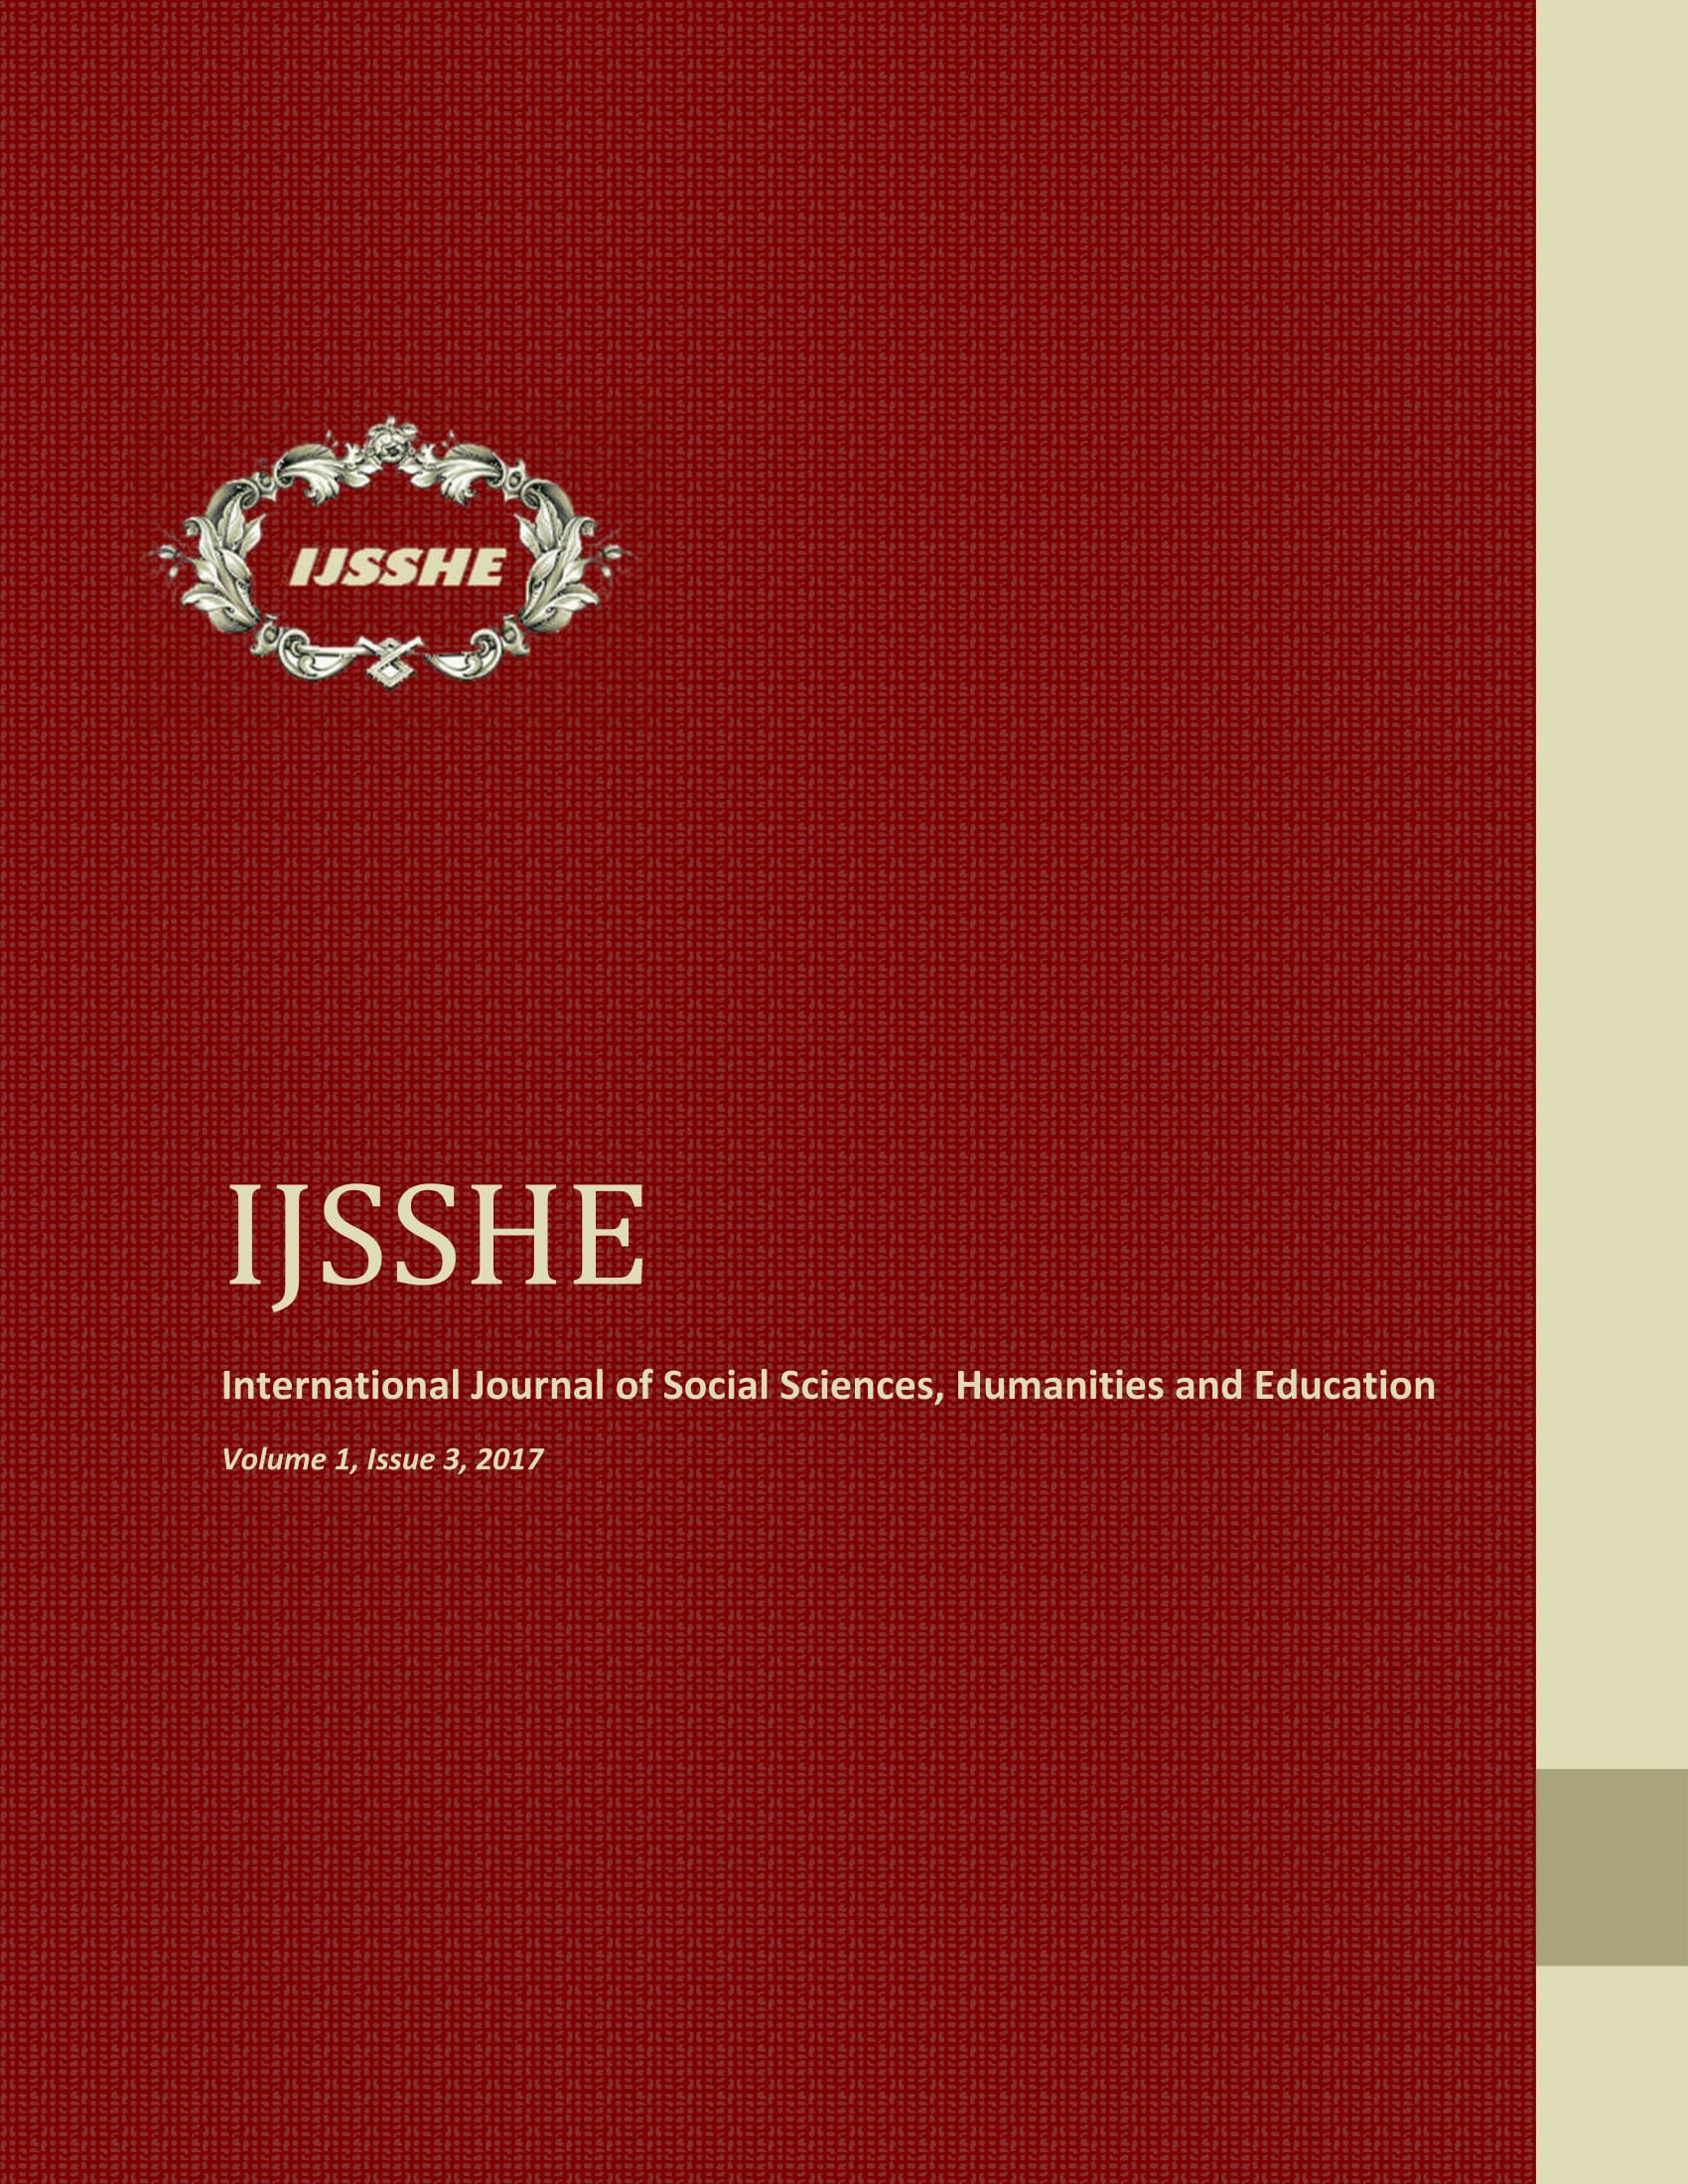 IJSSHE Vol 1, Issue 3, 2017